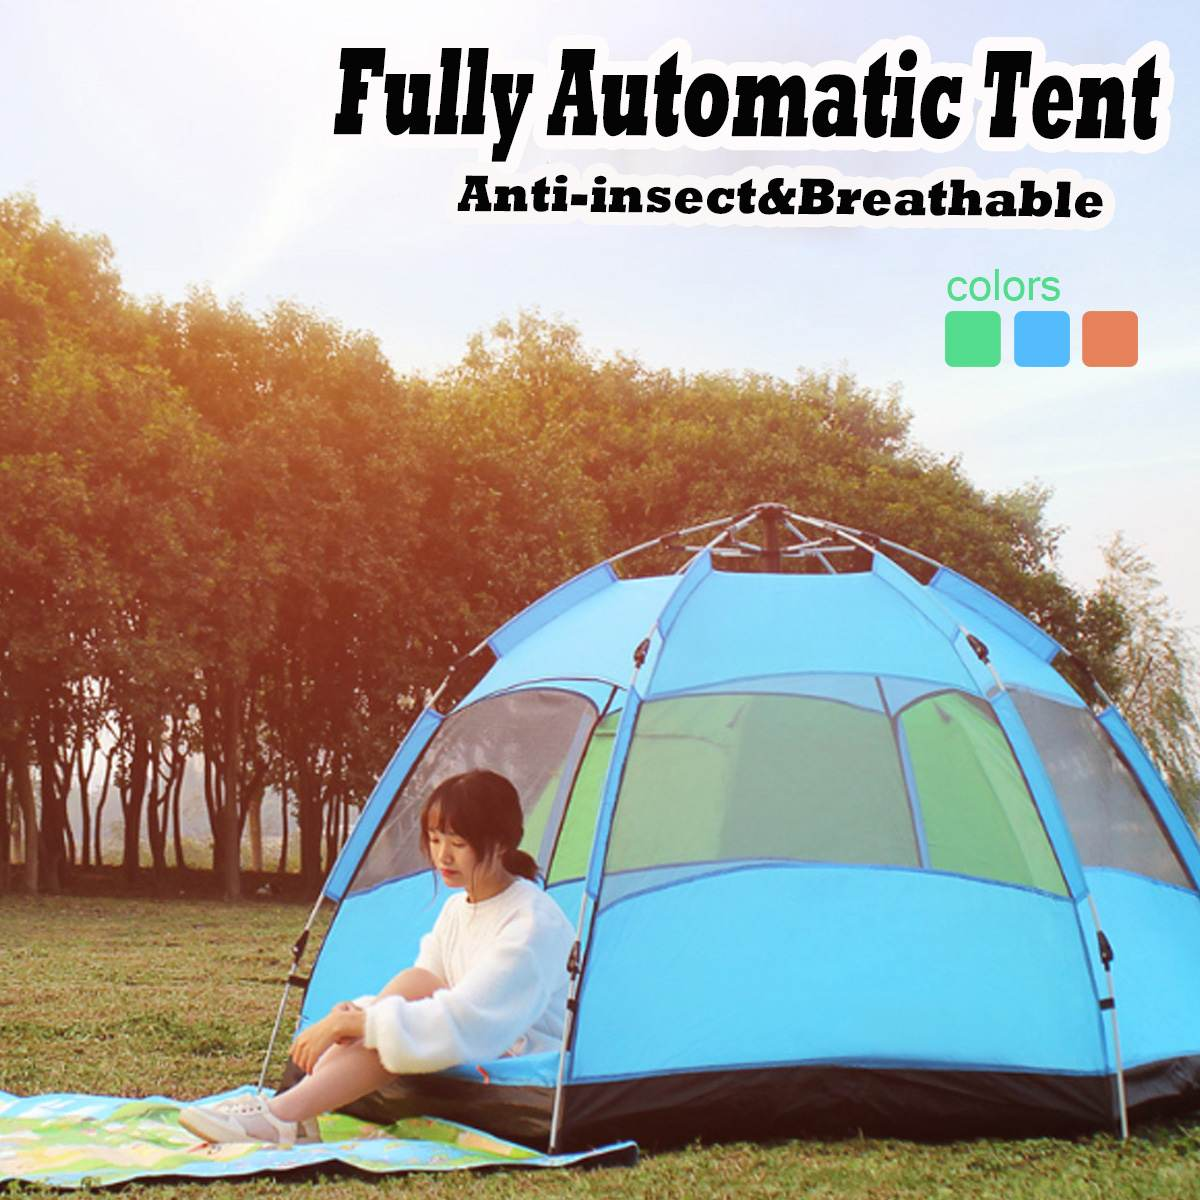 Automatic Tent 3-5 Person Camping Tent Tourist Tents Outdoor Camping Travelling Hiking Fishing Sun ShelterAutomatic Tent 3-5 Person Camping Tent Tourist Tents Outdoor Camping Travelling Hiking Fishing Sun Shelter